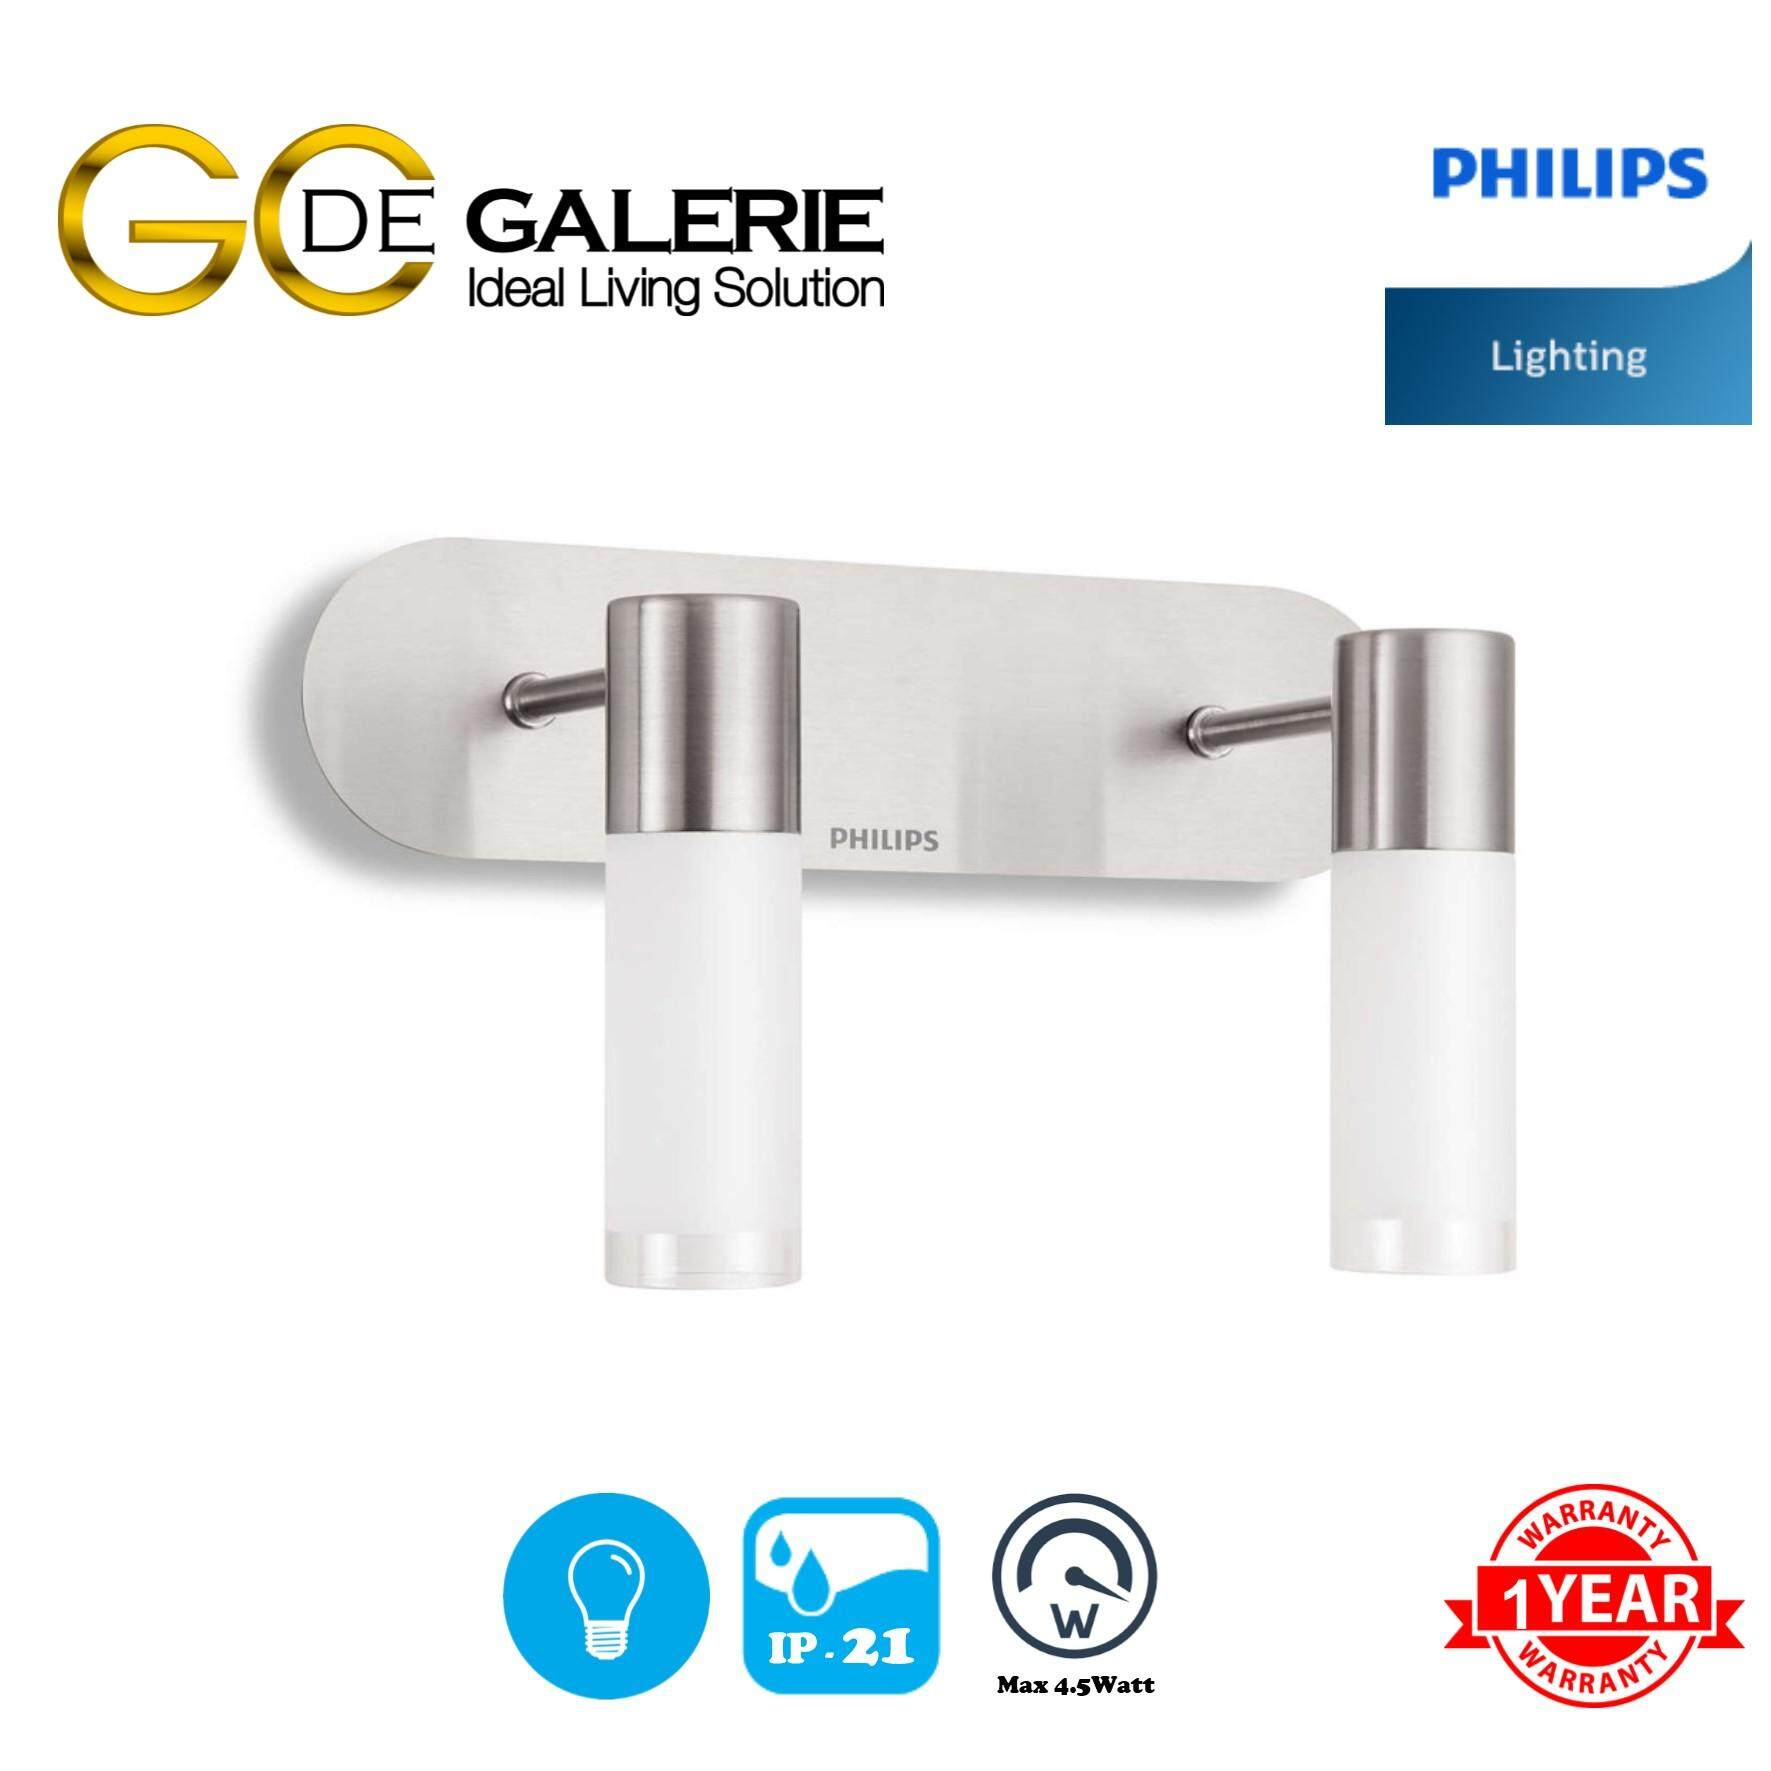 WALL LIGHT LED PHILIPS 30922 SATIN NICKEL 2x5W